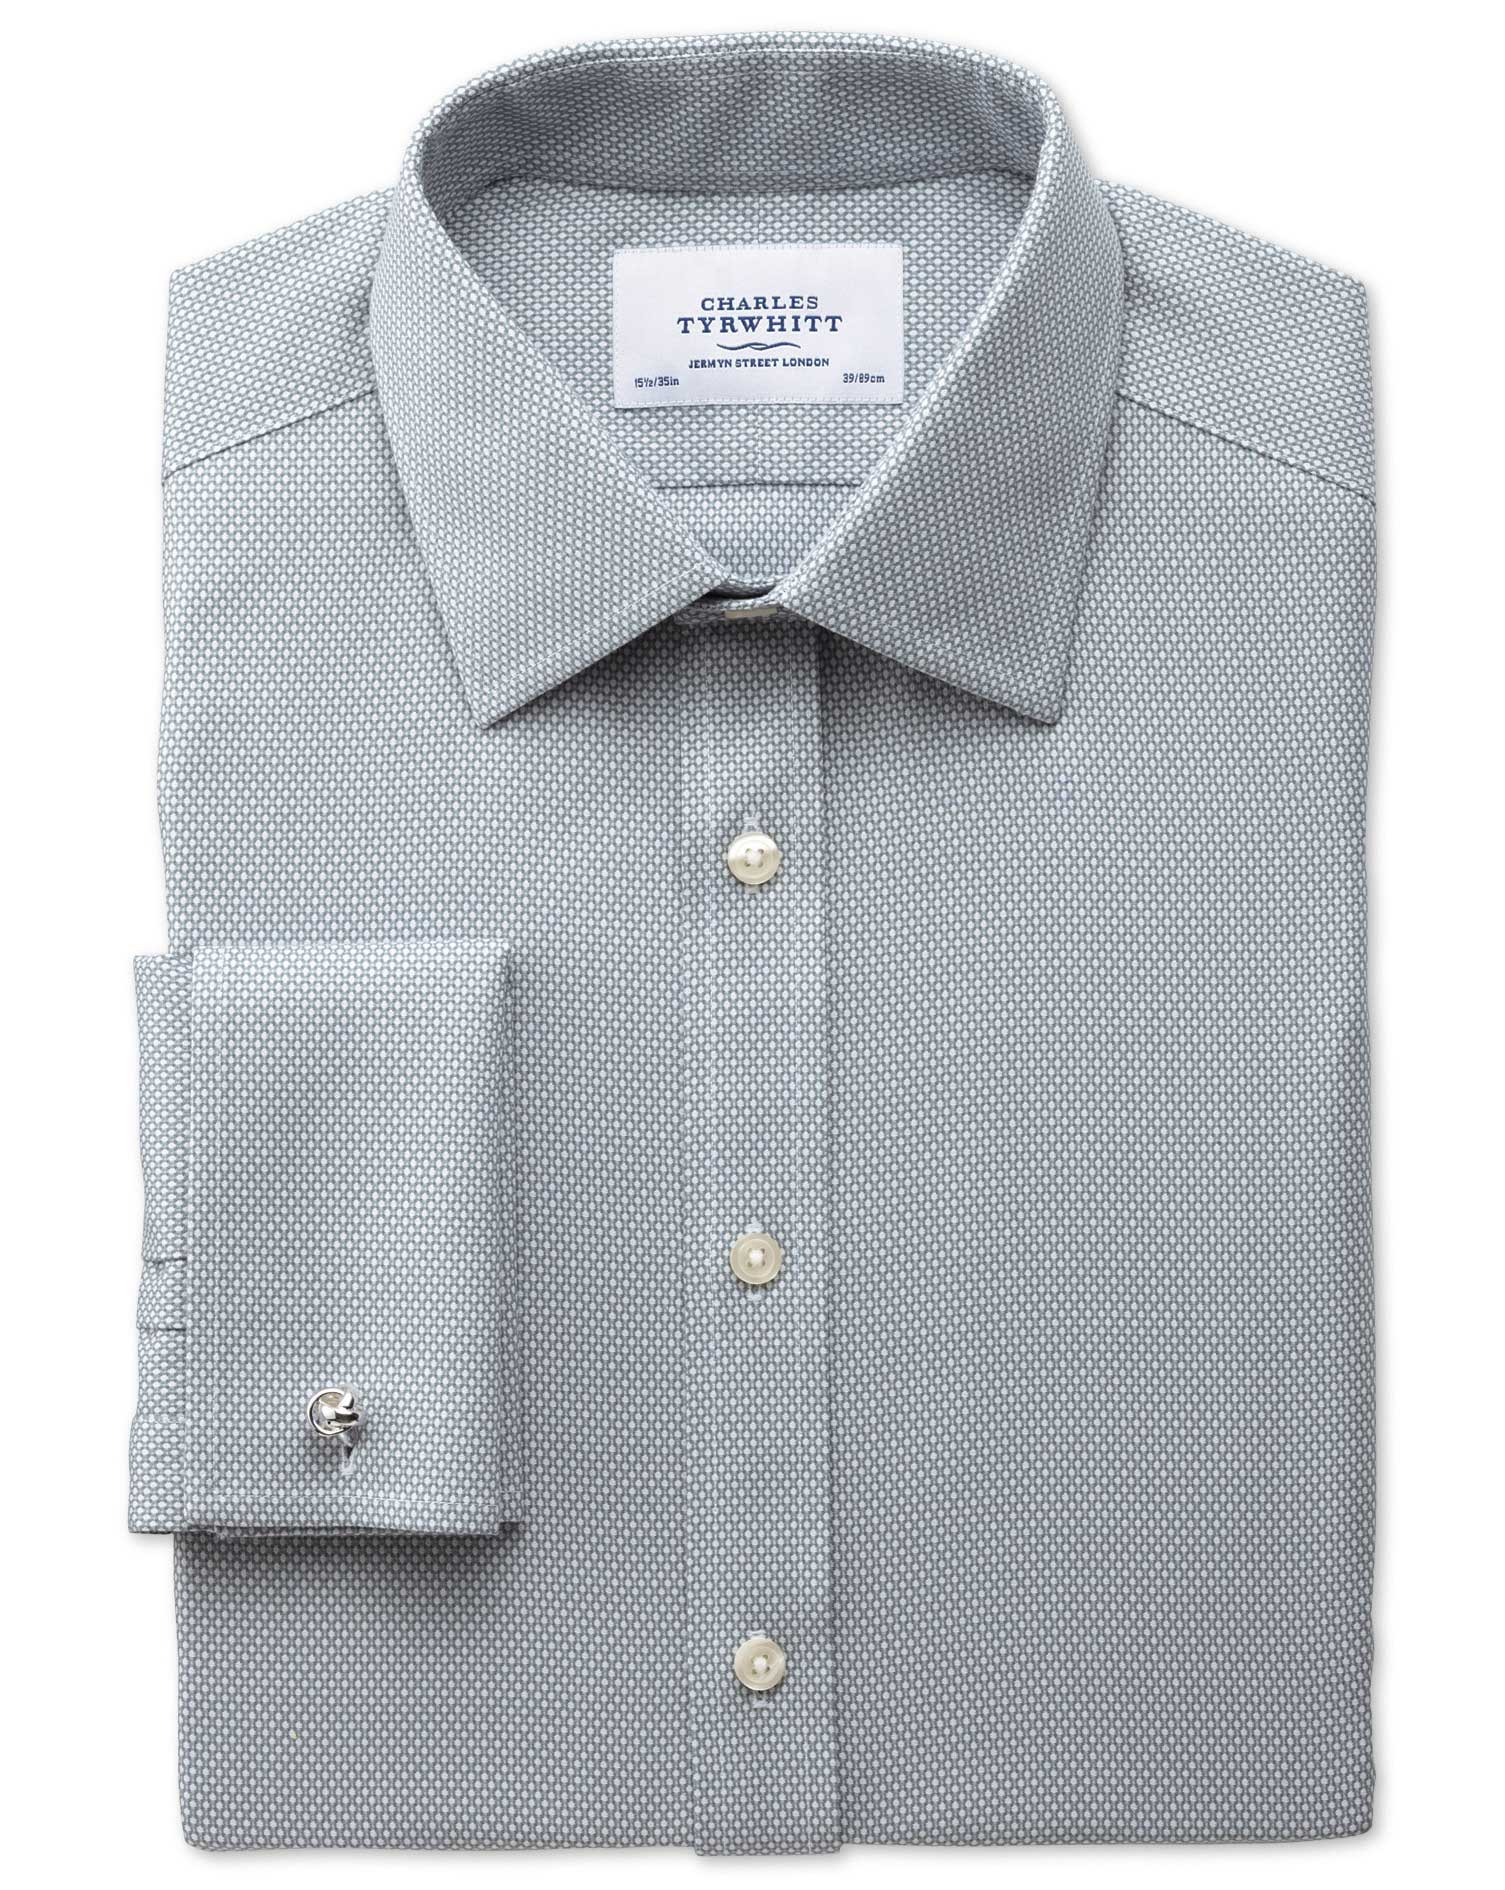 Classic Fit Non-Iron Honeycomb Grey Cotton Formal Shirt Double Cuff Size 16/38 by Charles Tyrwhitt